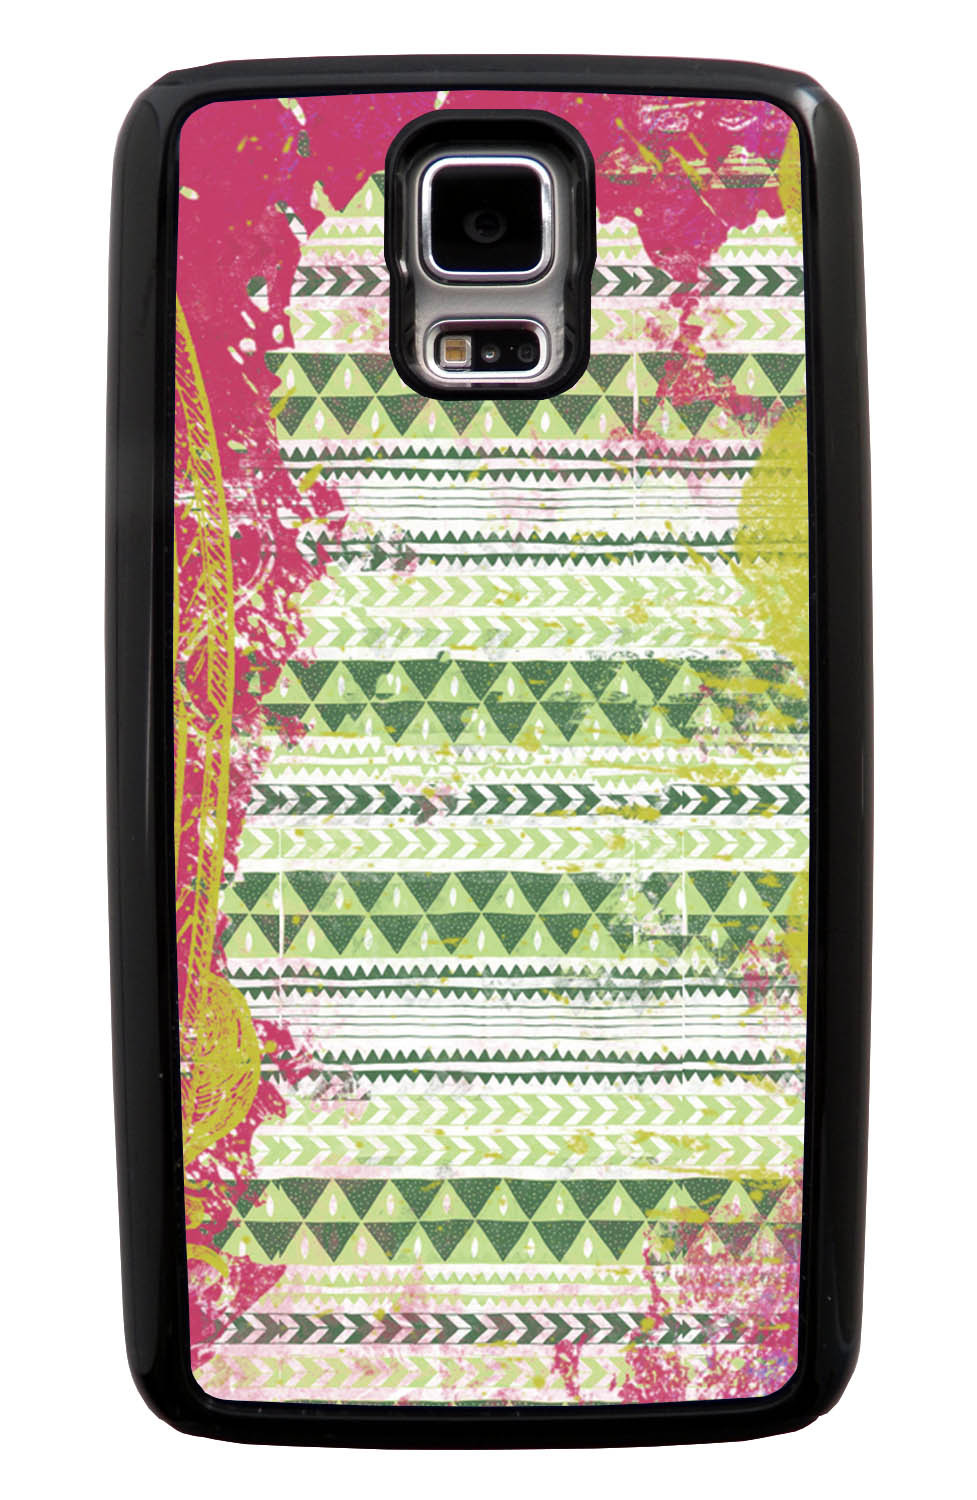 Samsung Galaxy S5 / SV Aztec Case - Pink and Yellow Paint with Green - Paint Splatter Overlay - Black Tough Hybrid Case